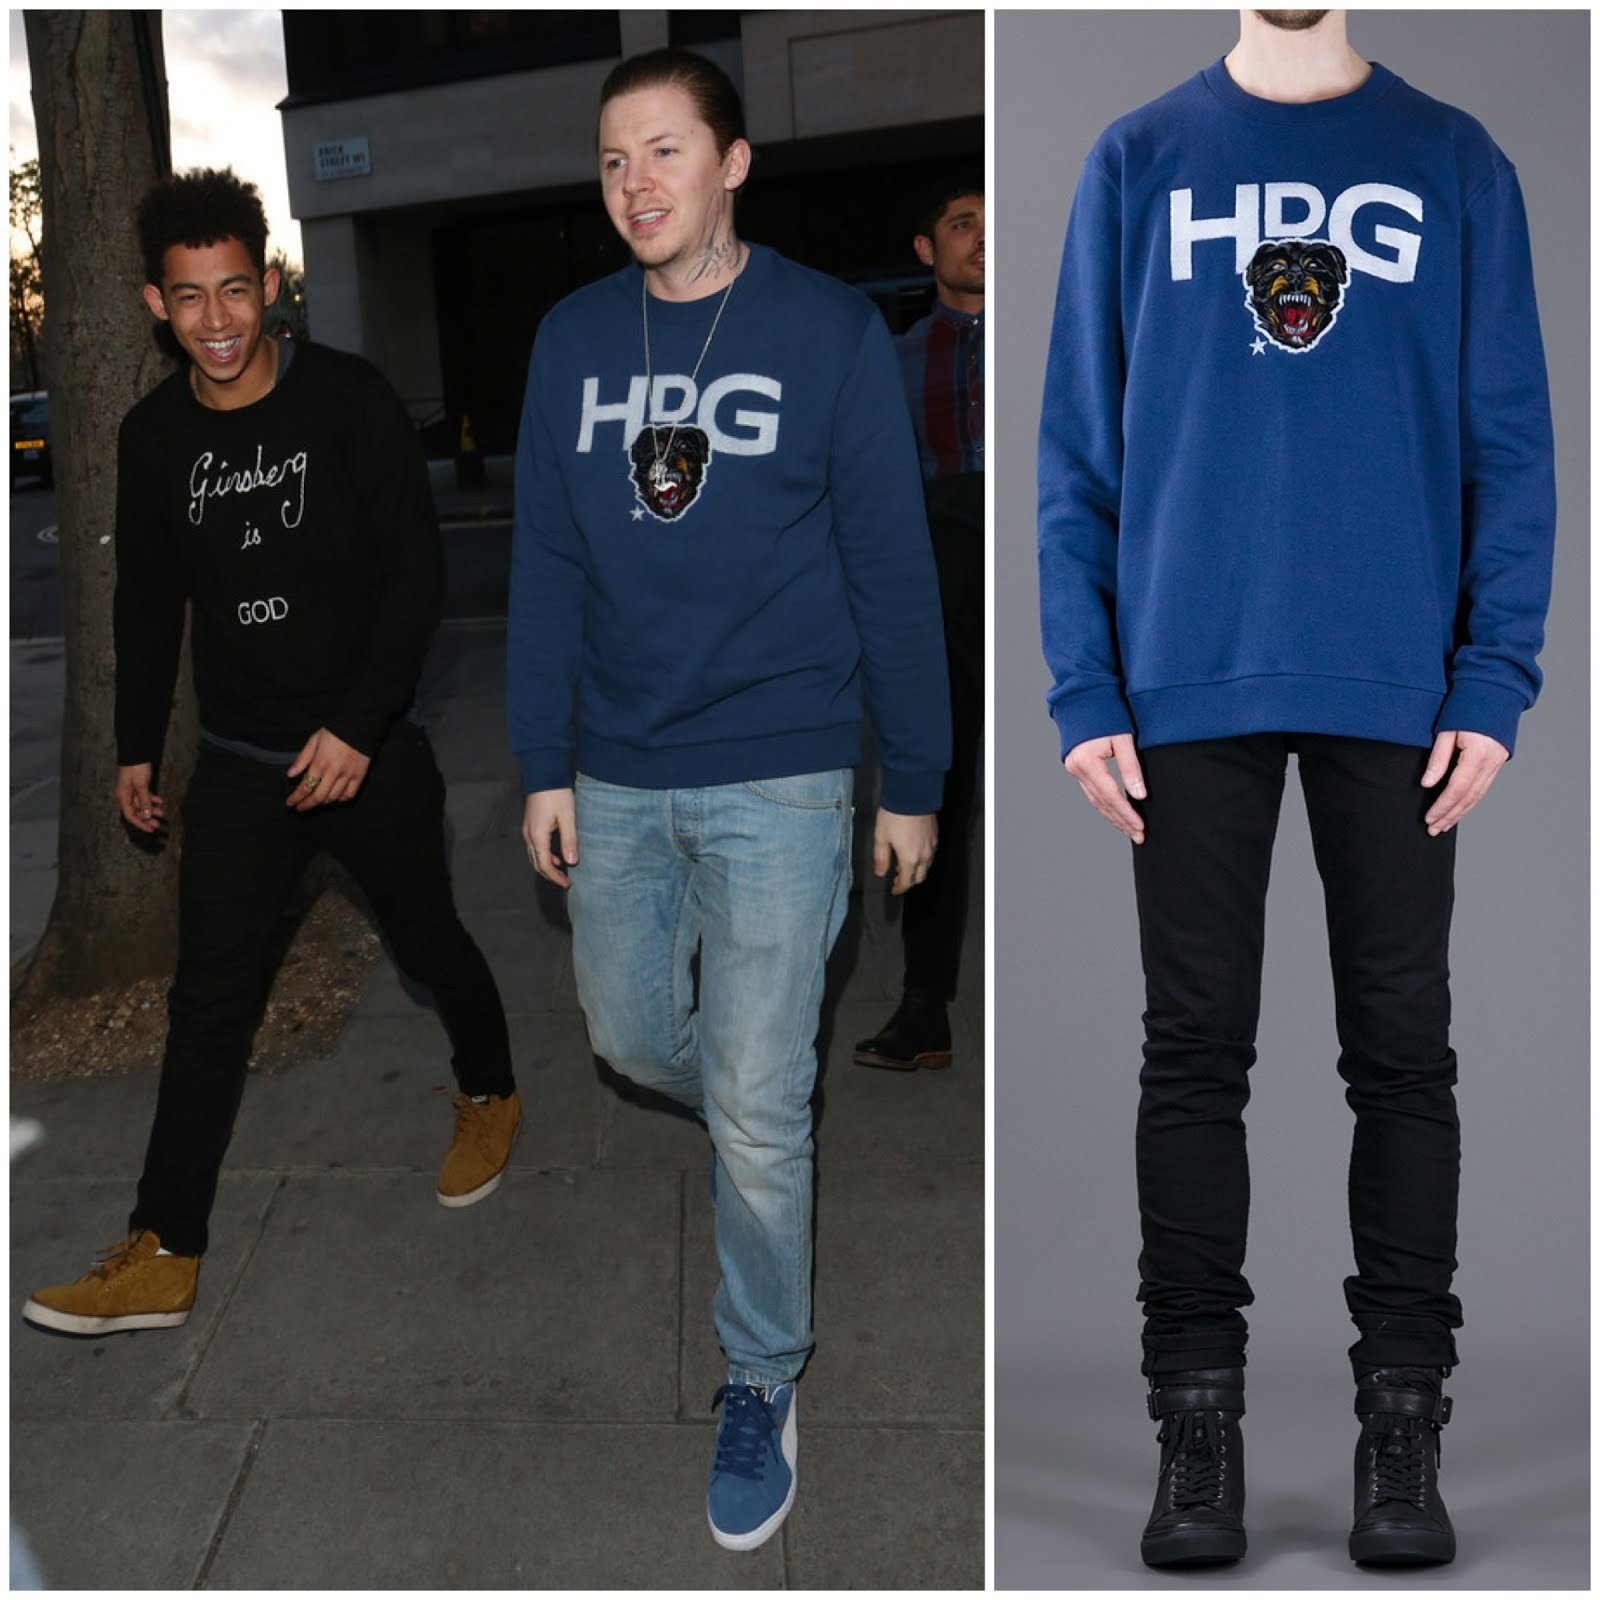 00O00 Menswear blog: Professor Green in Givenchy HDG Rottweiler sweatshirt - The Baroque Cabaret Troupe: The Promo Affair - VIP launch at the Playboy club in London April 2013